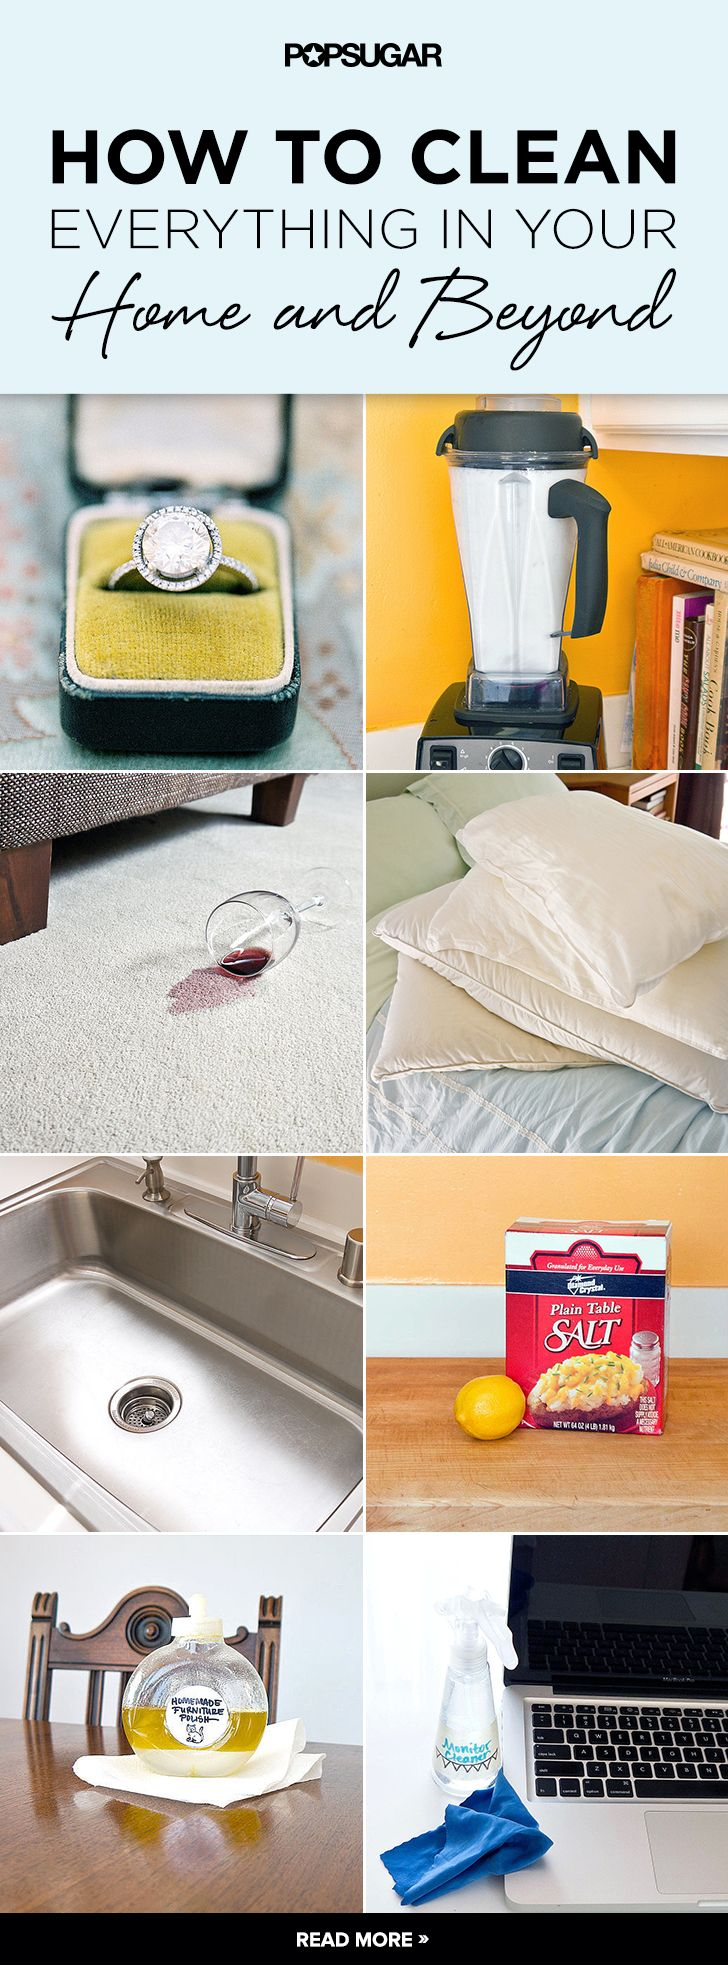 How to Clean Everything in Your Home and Beyond #goodtoknow